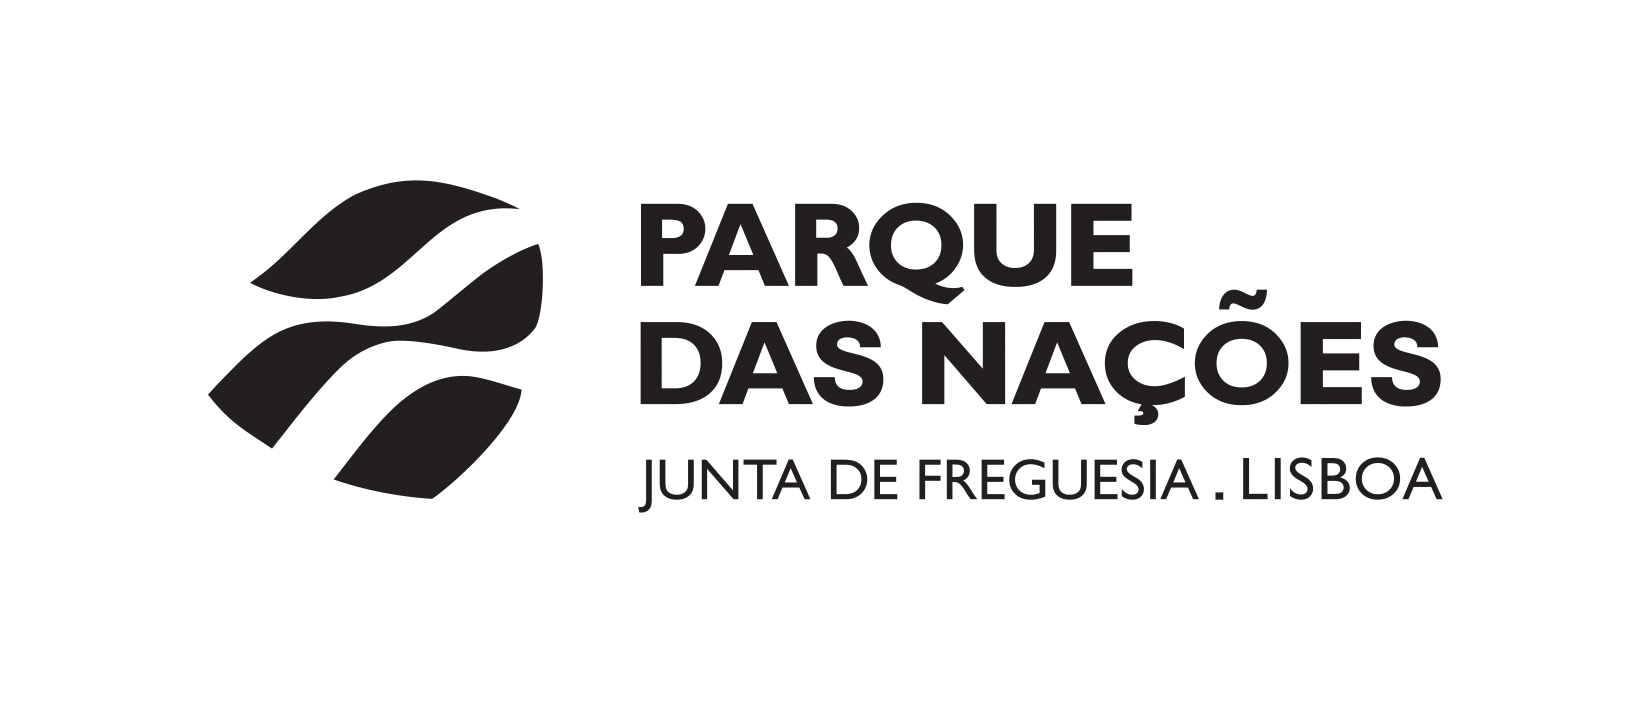 Parish Council of Parque das Nações